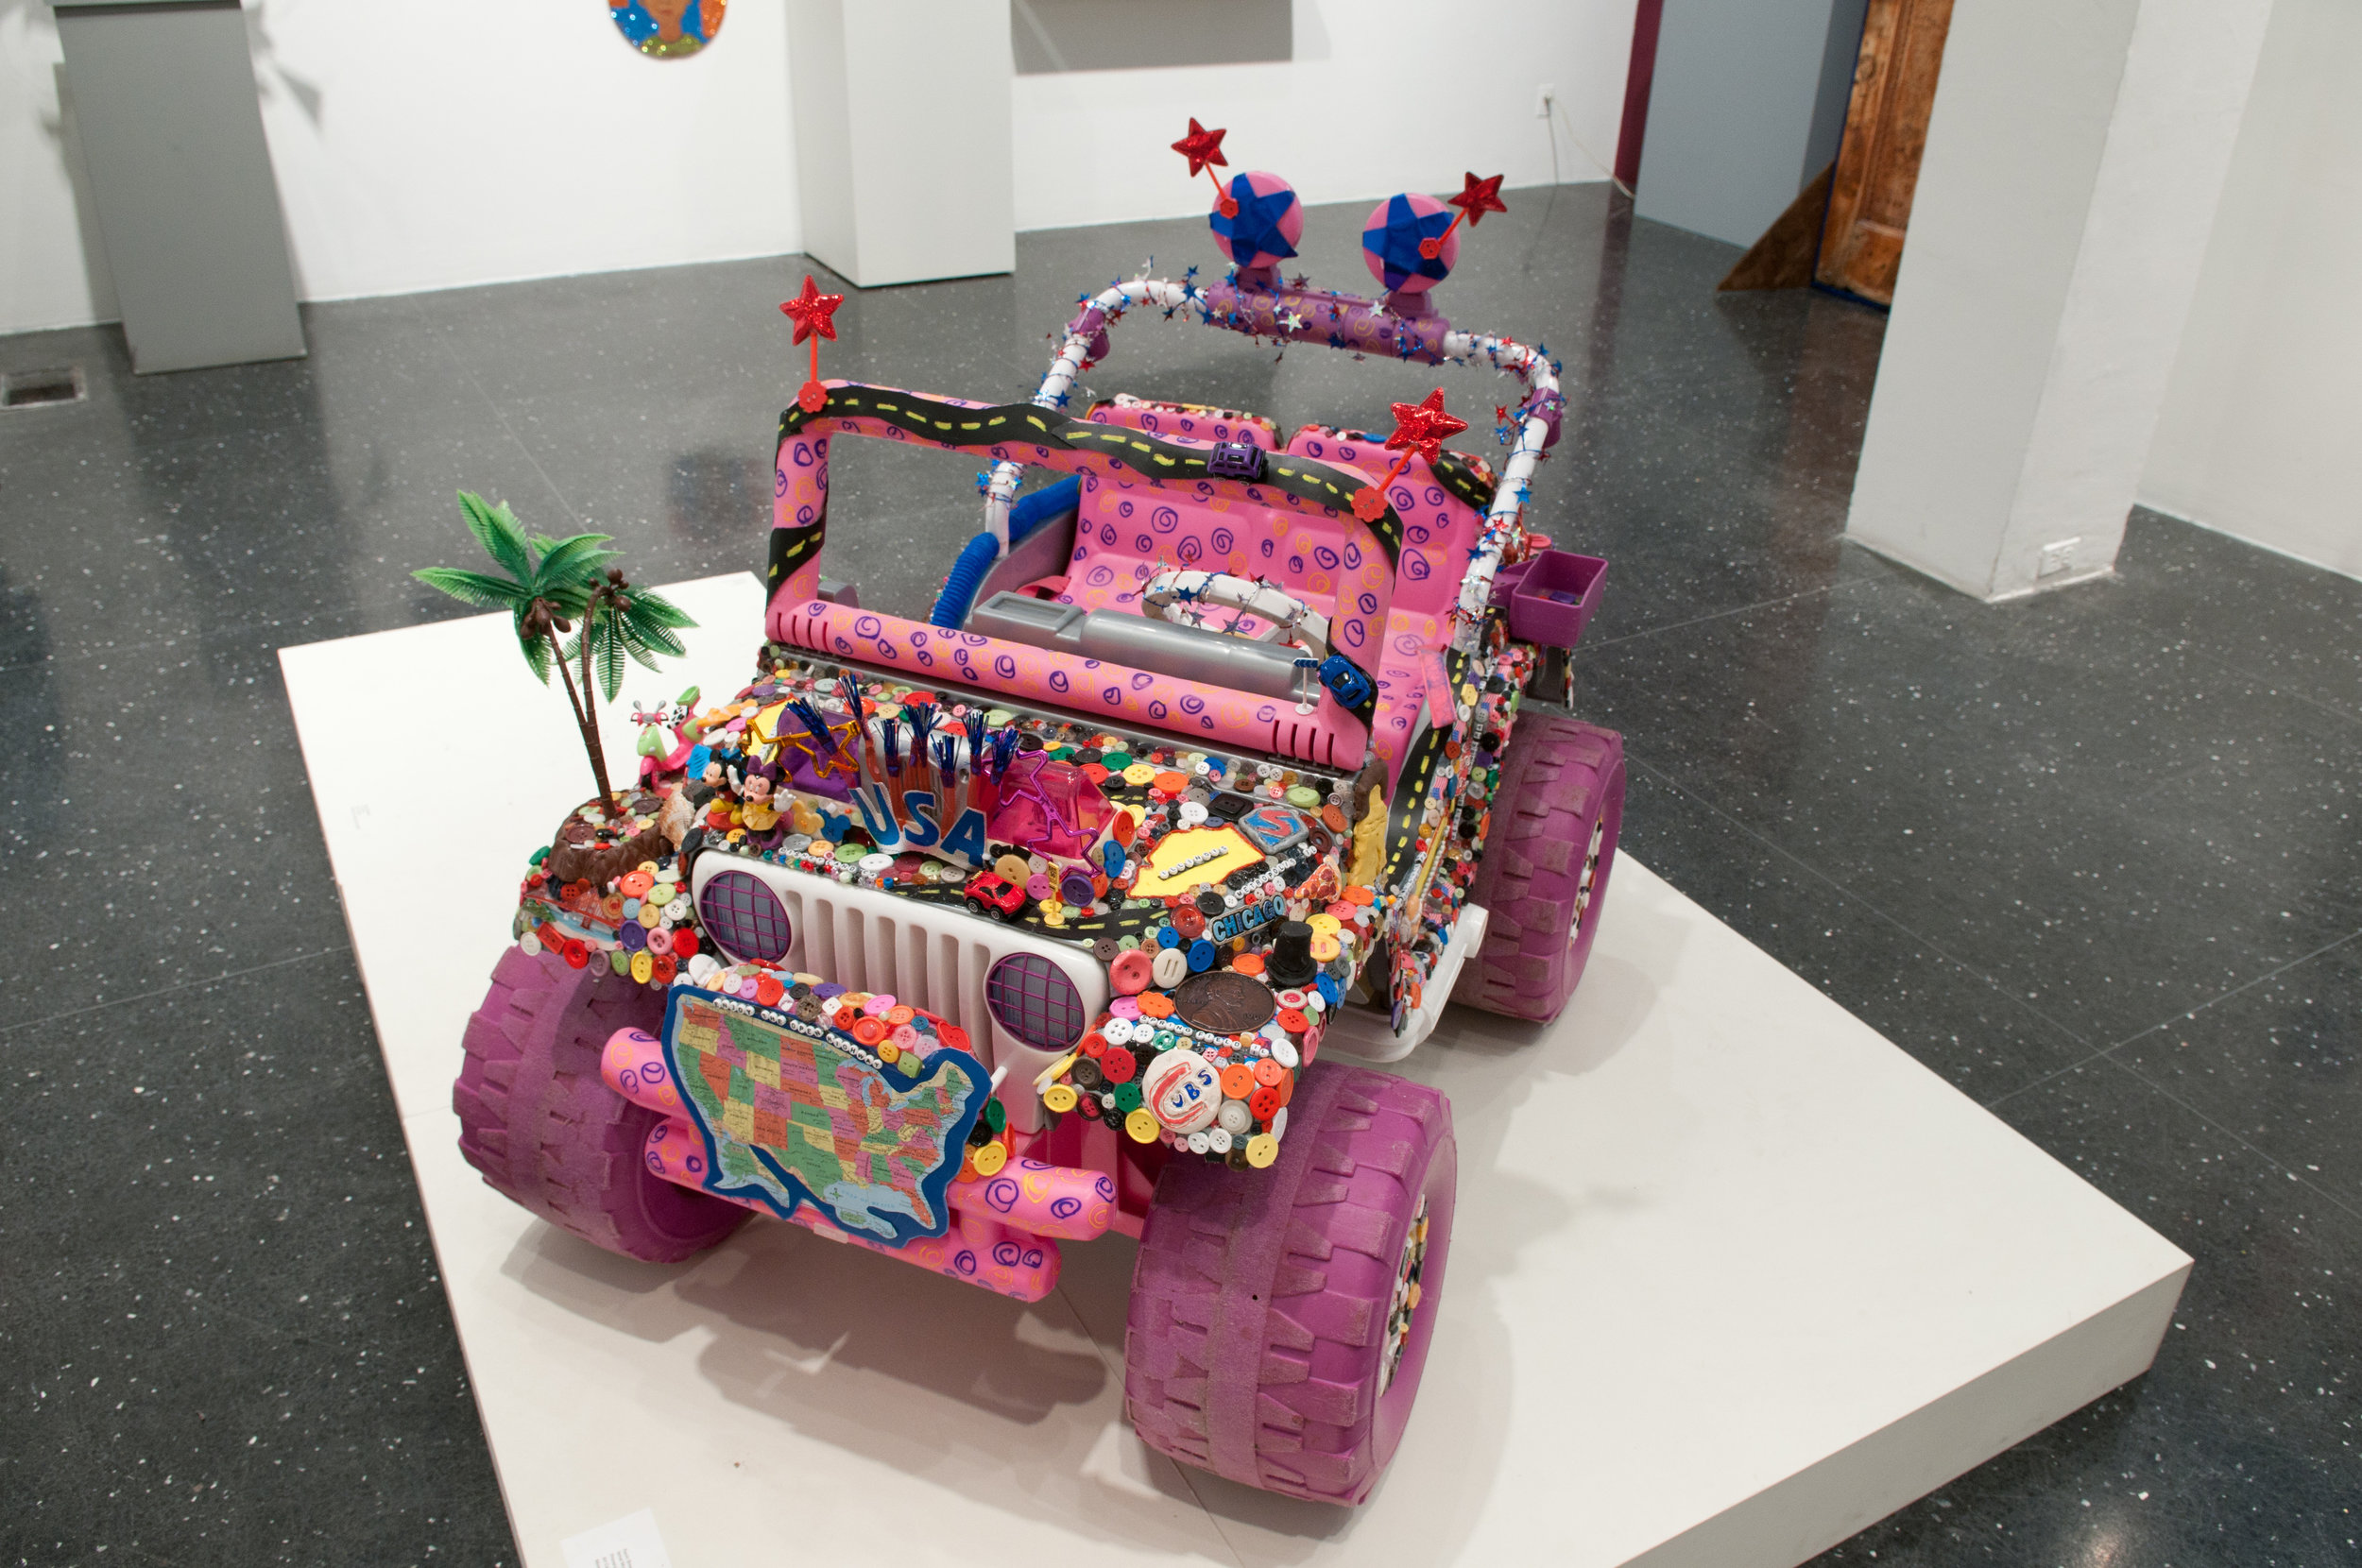 Assemblage Vehicles inspired by the Art Cars